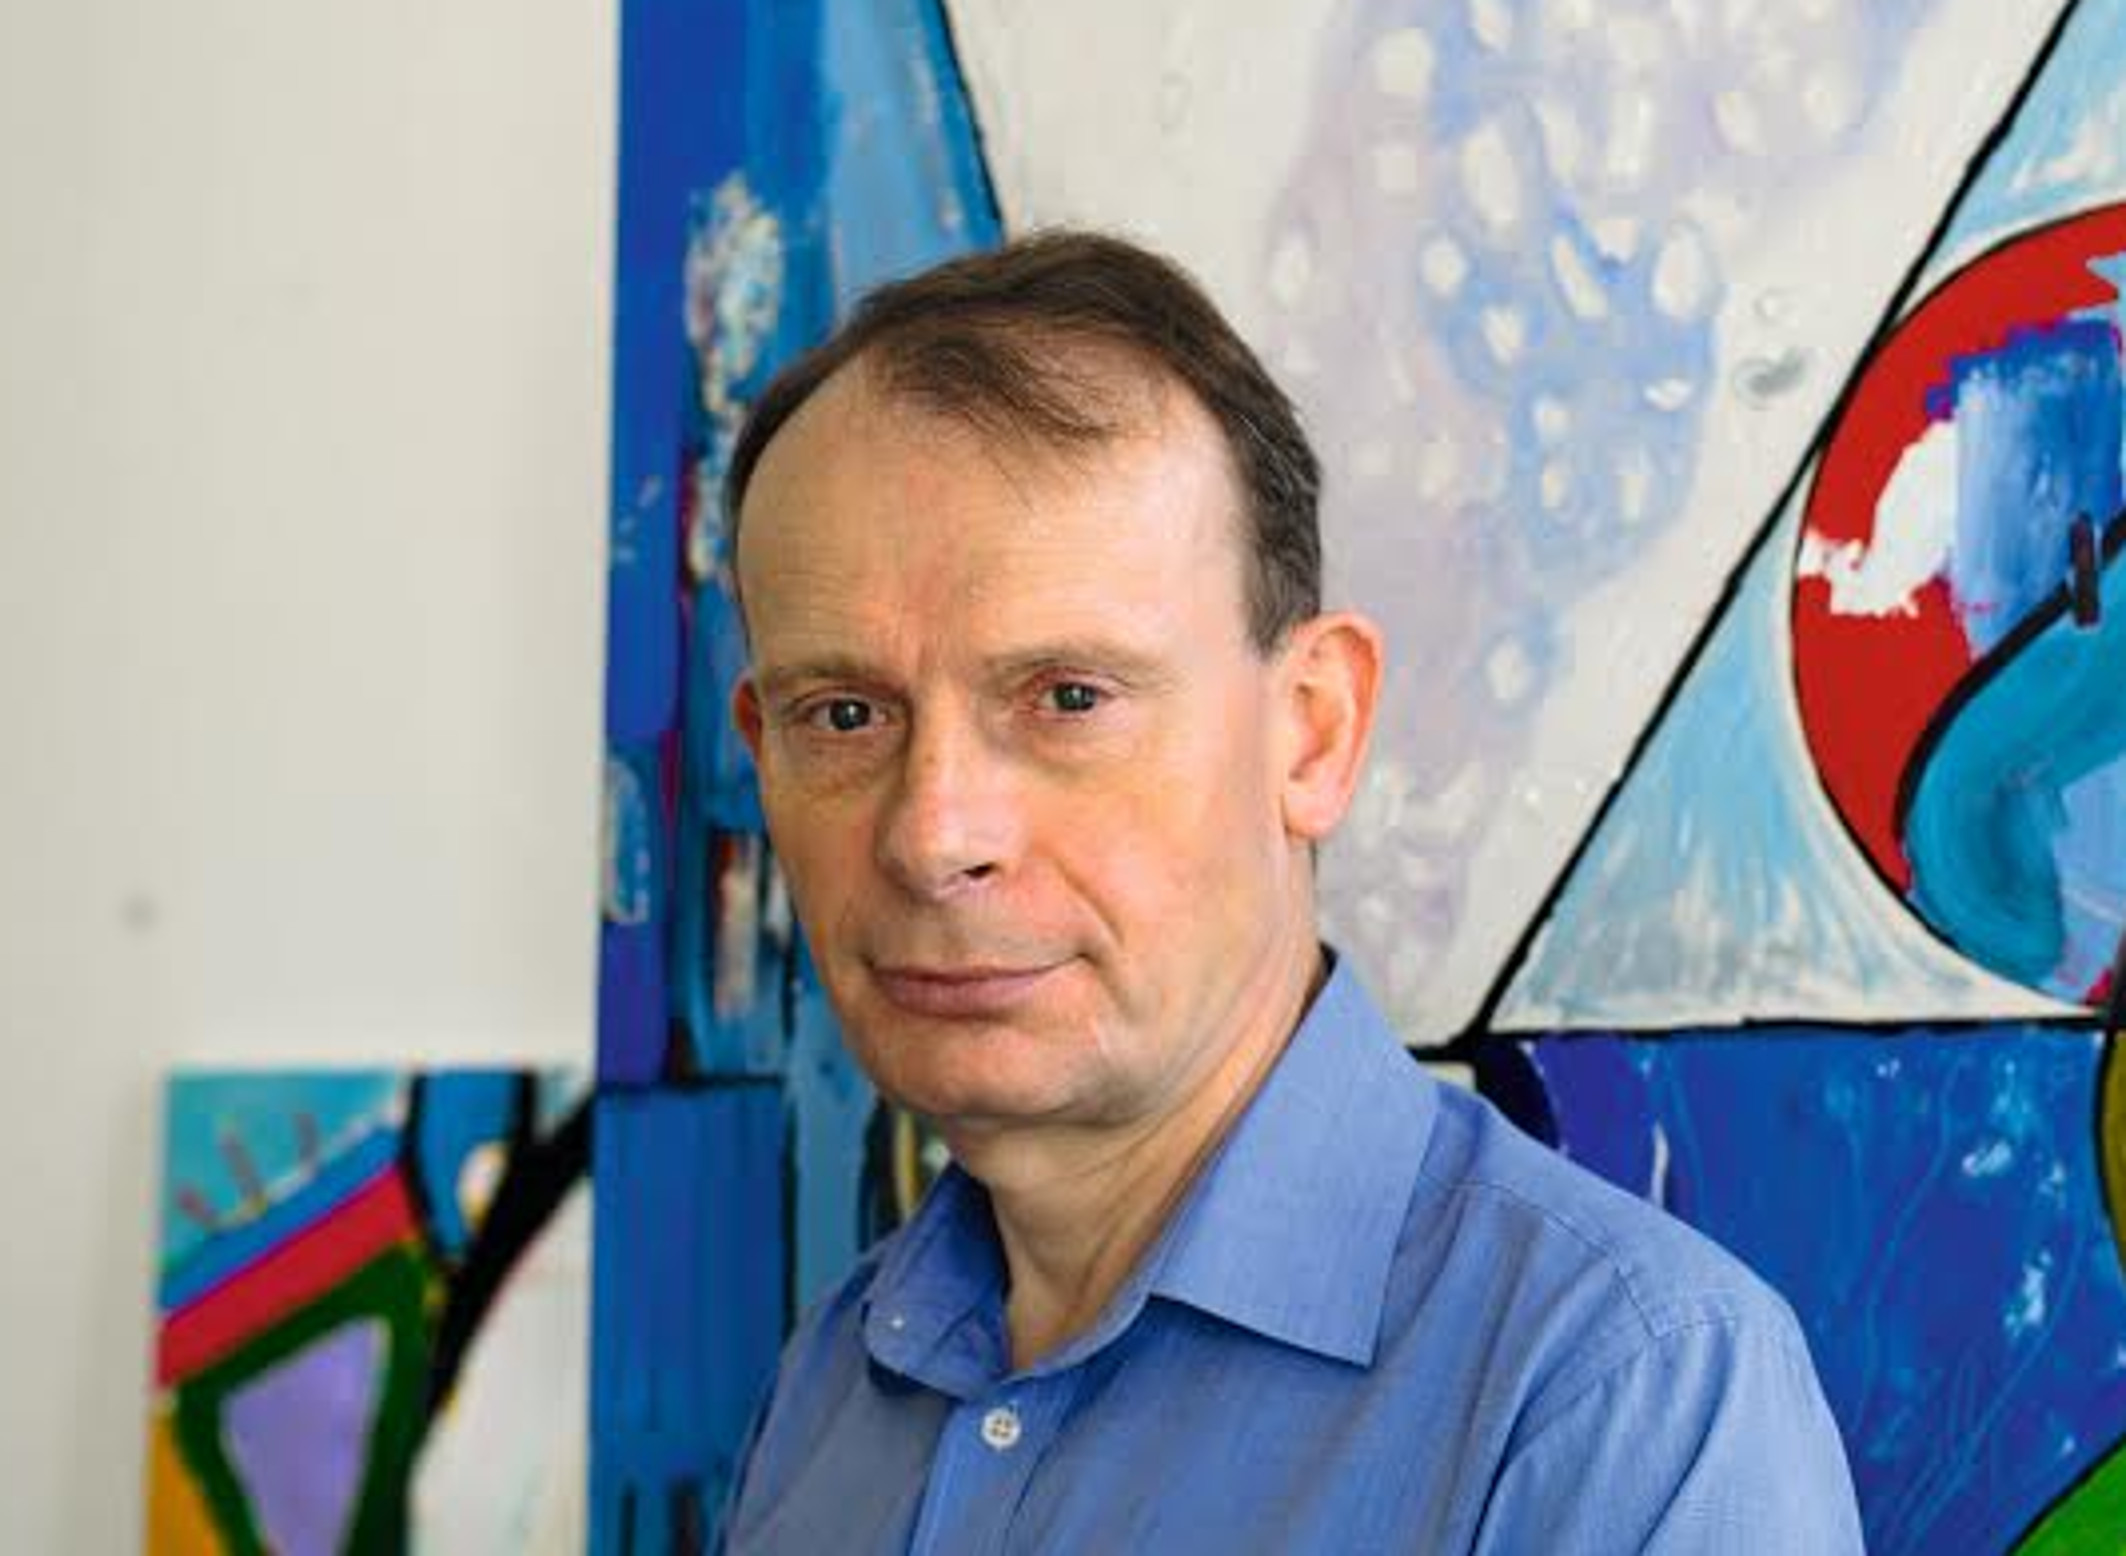 Image of Andrew Marr